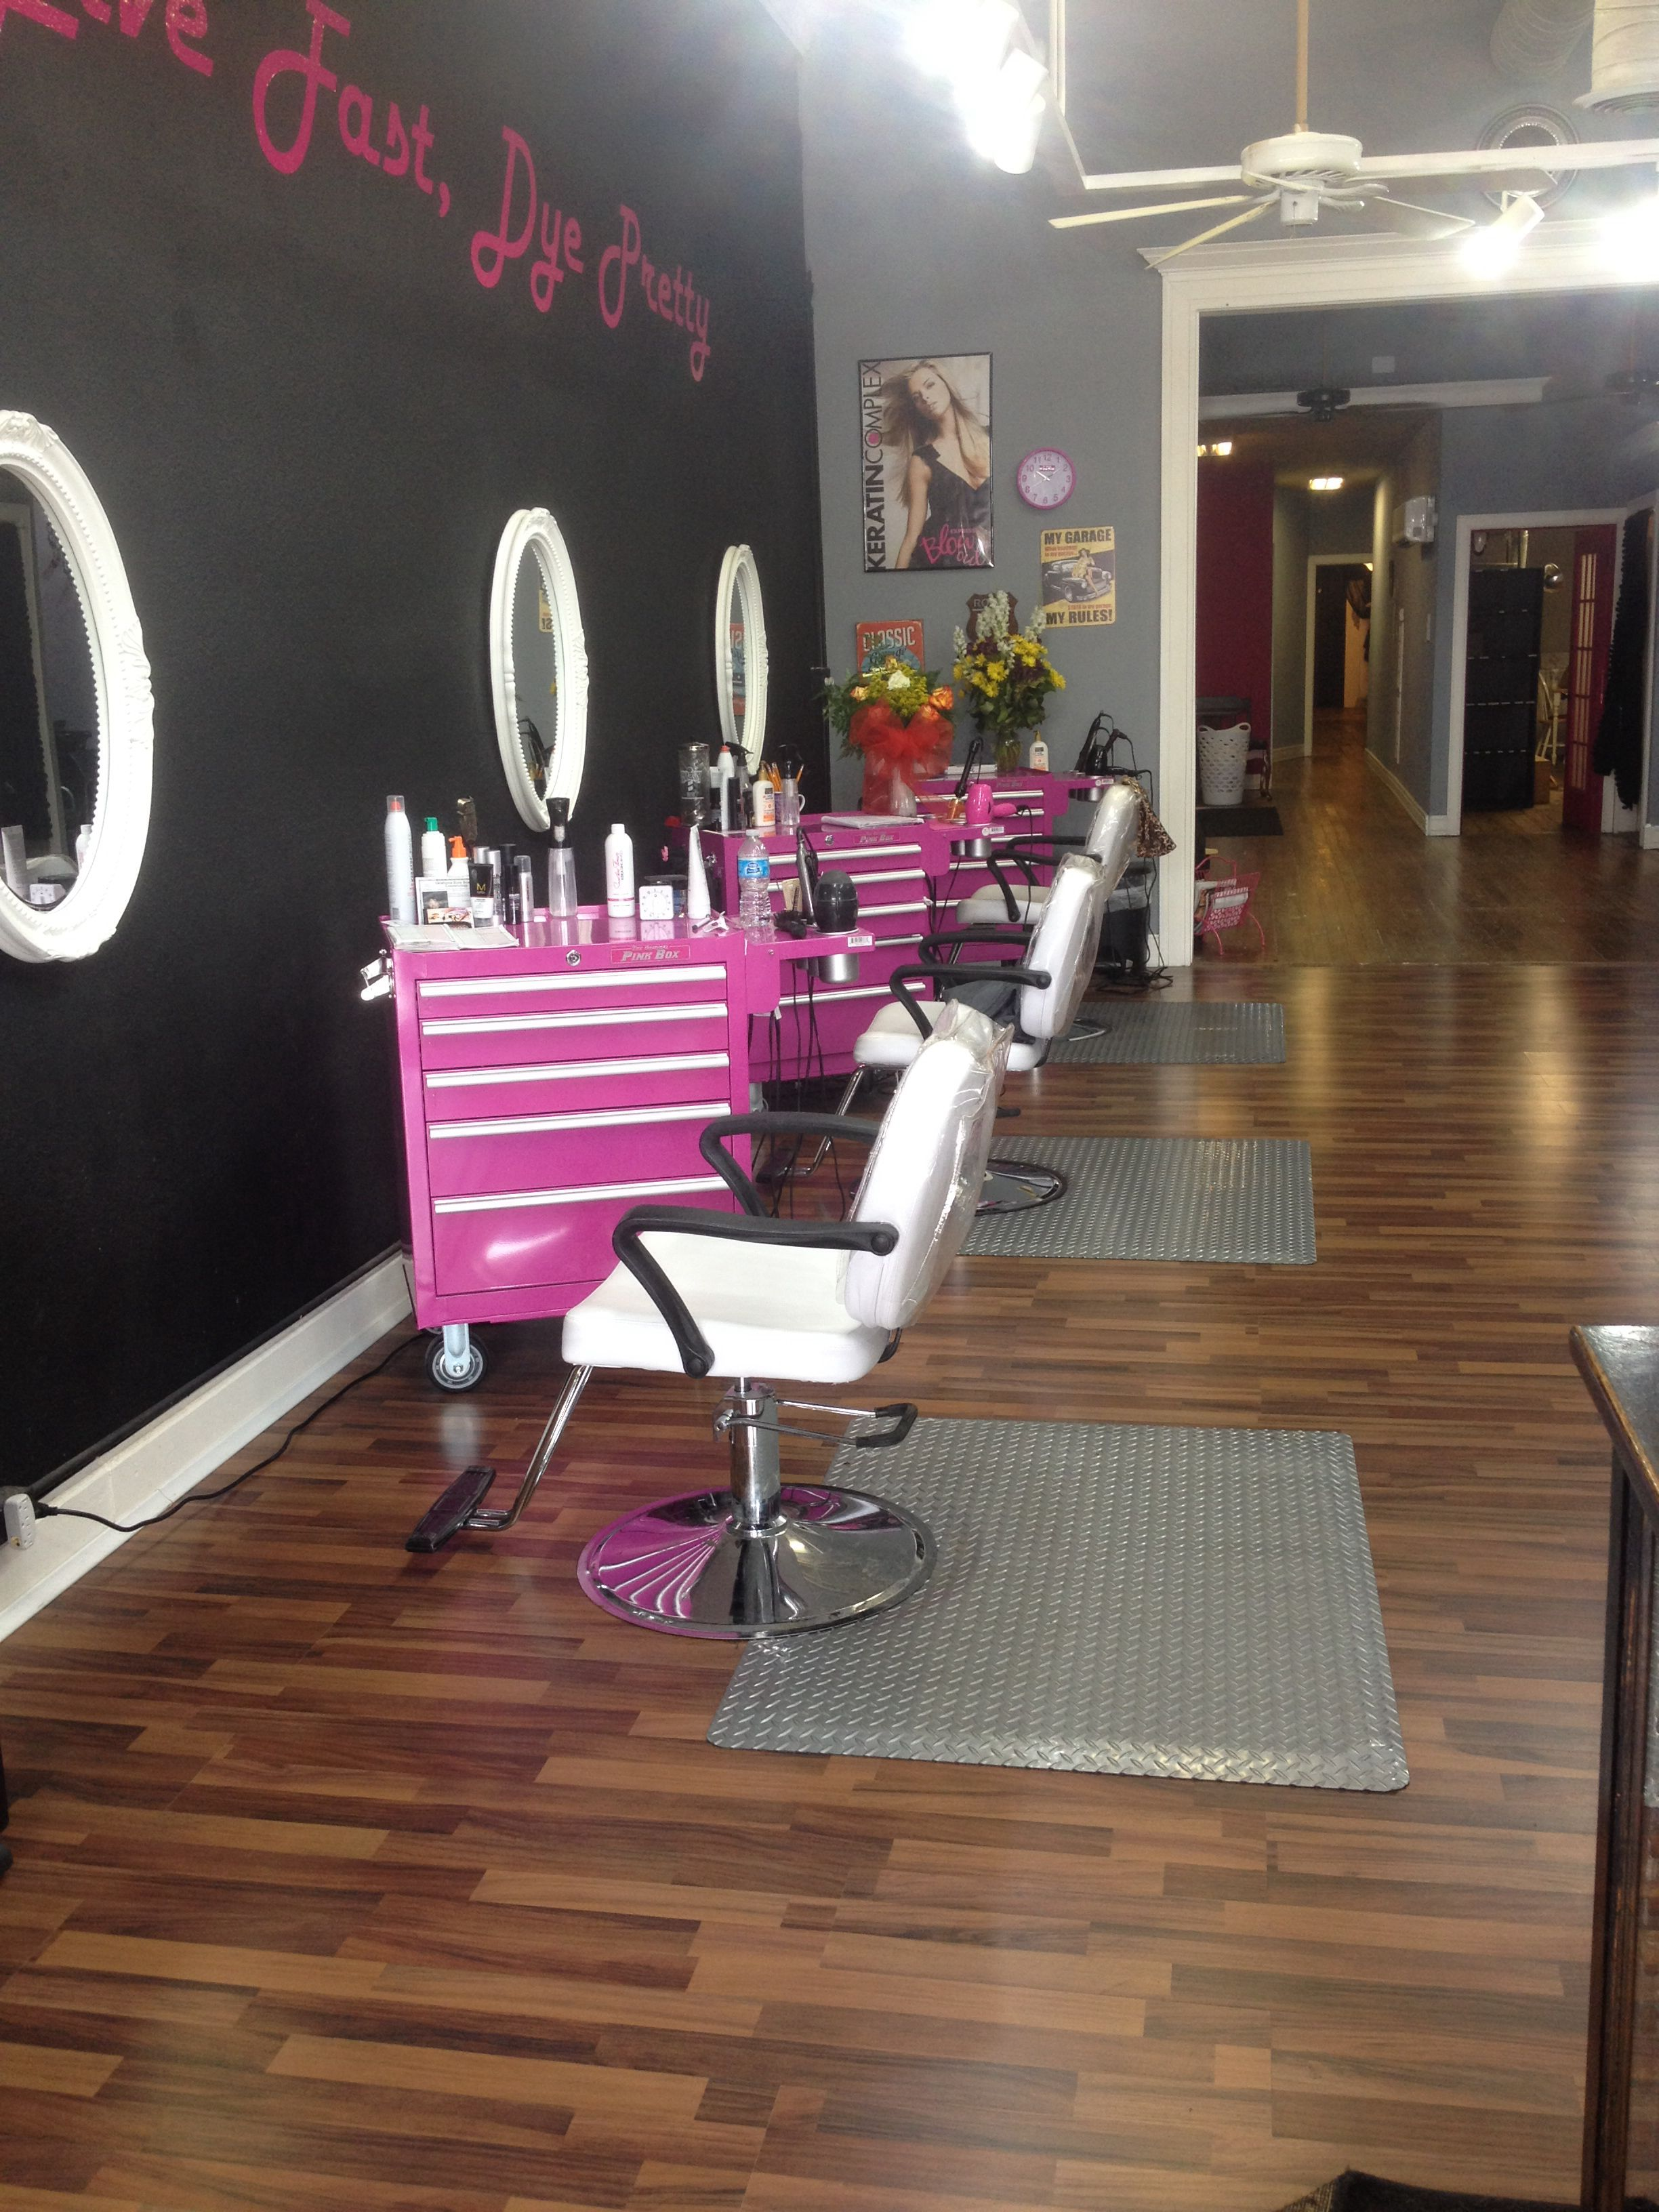 Salon Spa Kadillac Barbies Salon And Spa Weatherford Ok The Original